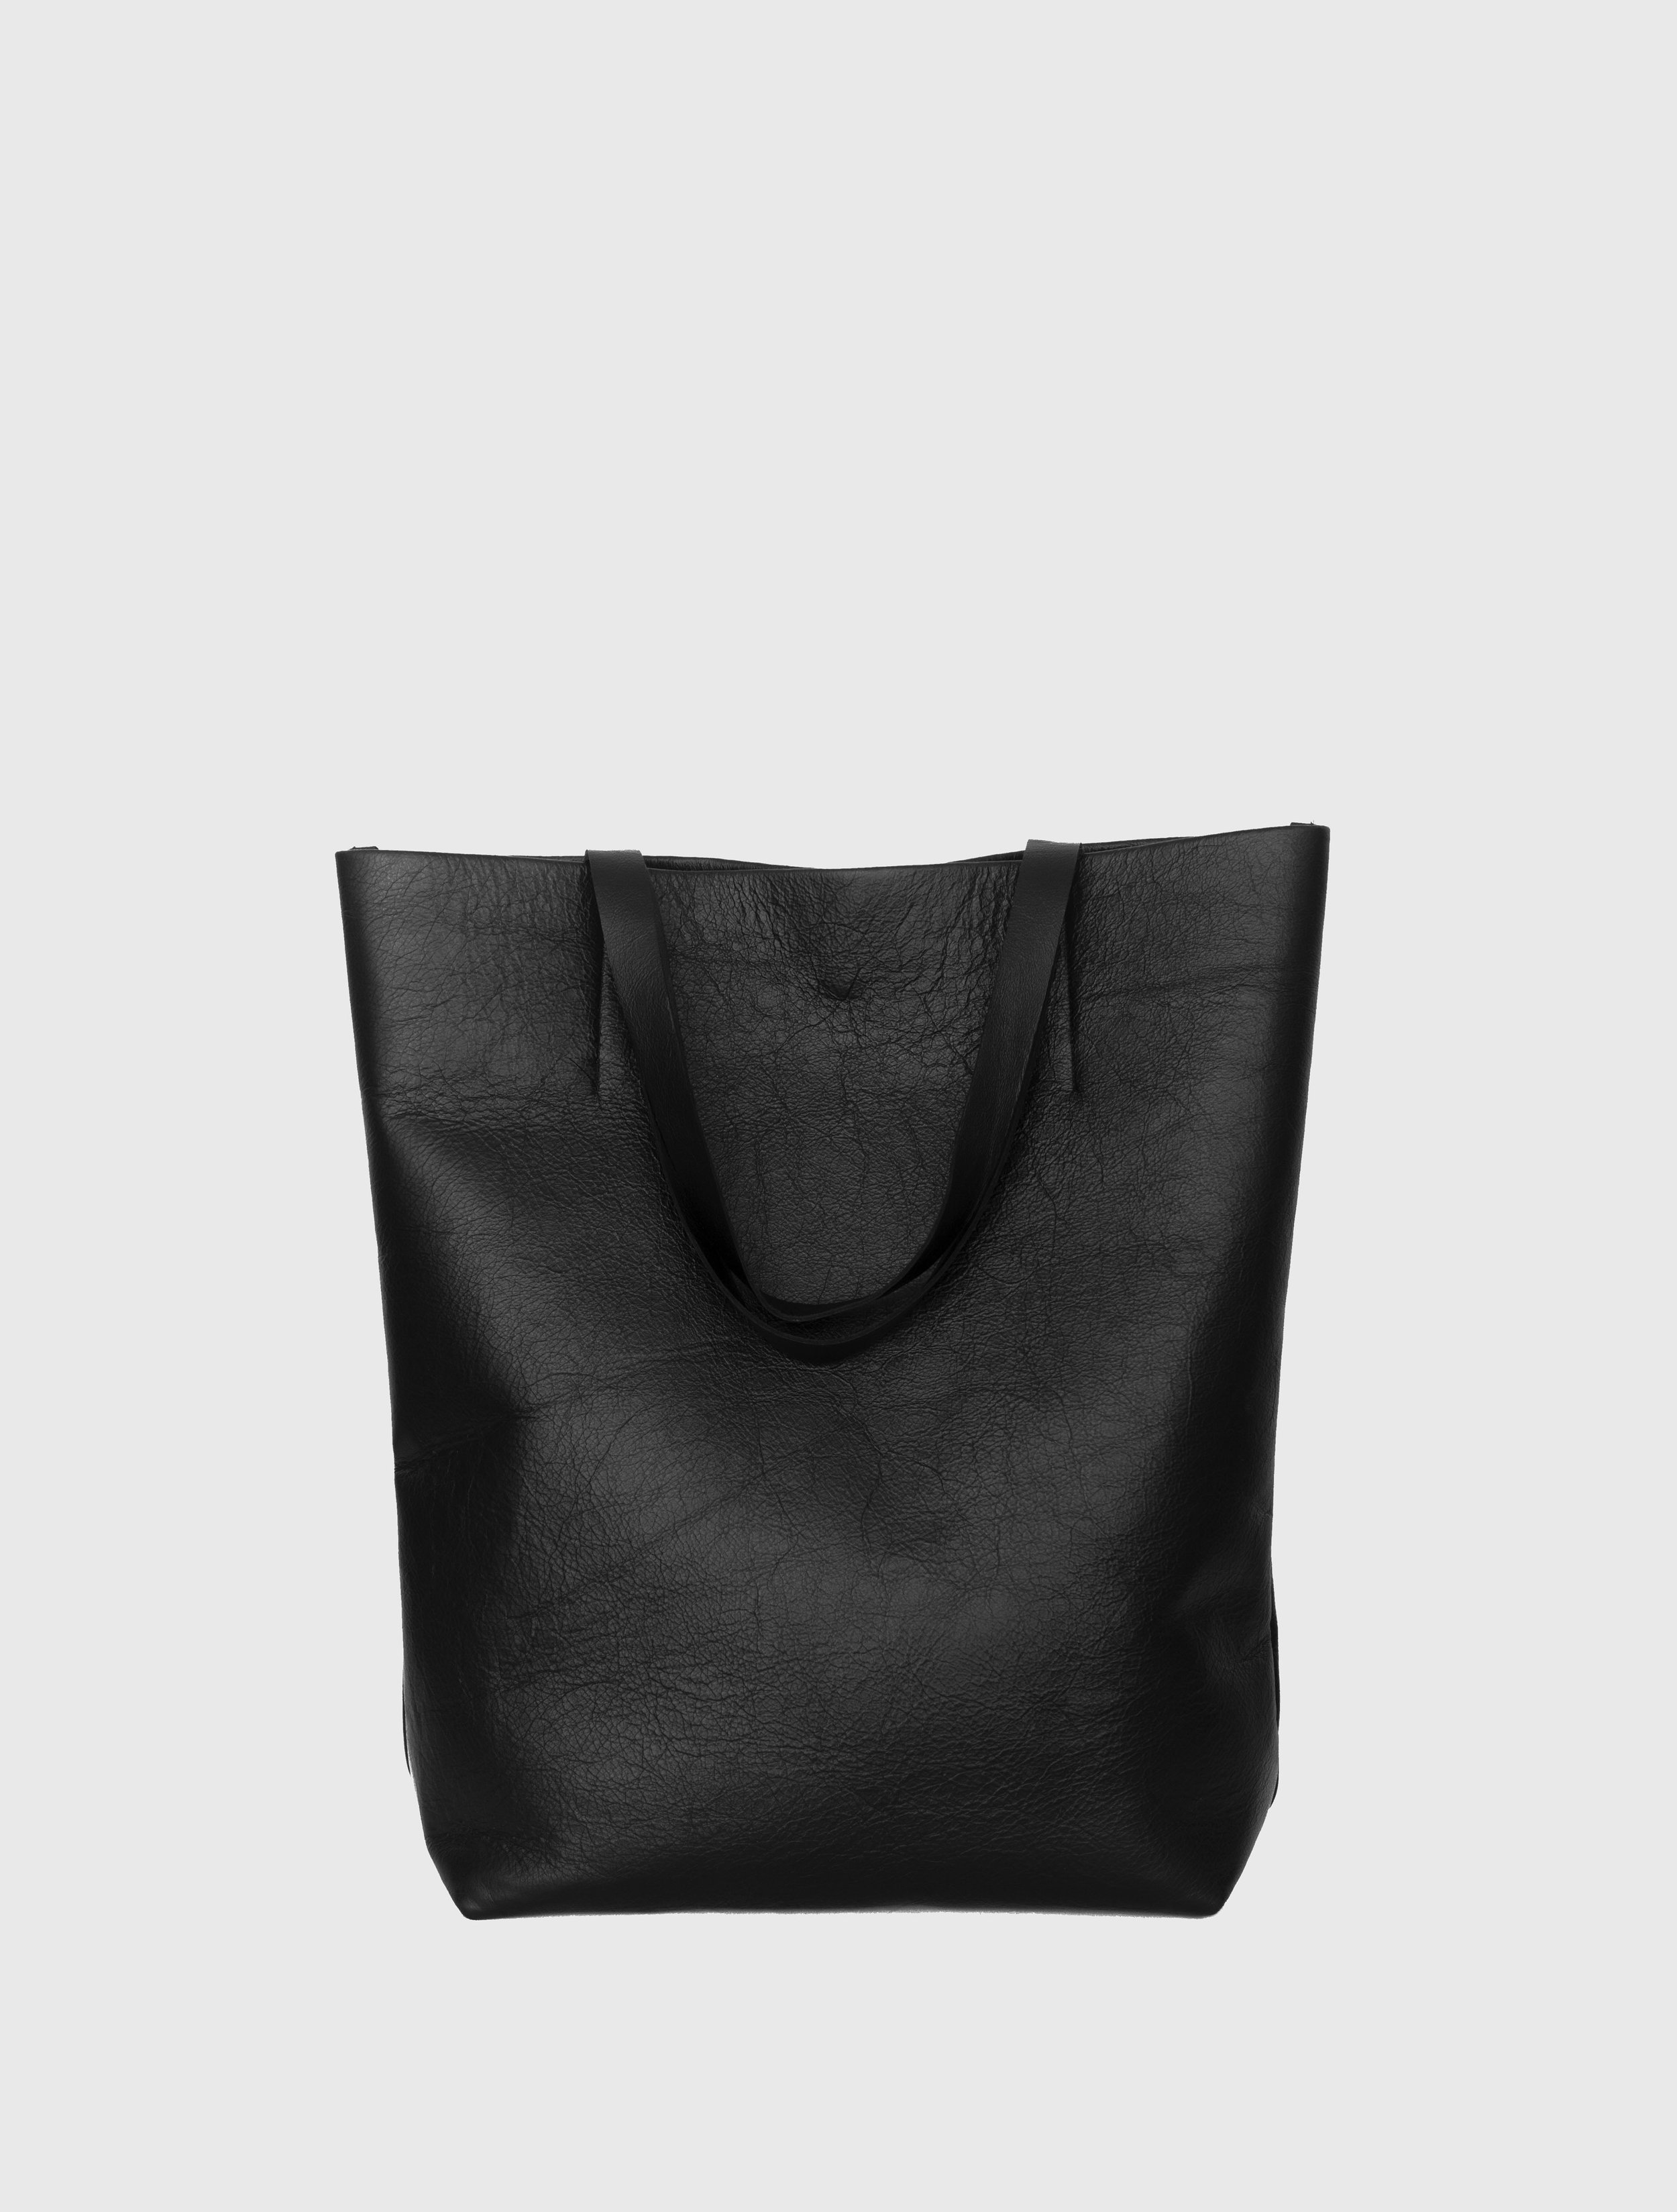 LEATHER X NEOPRENE TOTE BAG_0001_Layer 1.jpg